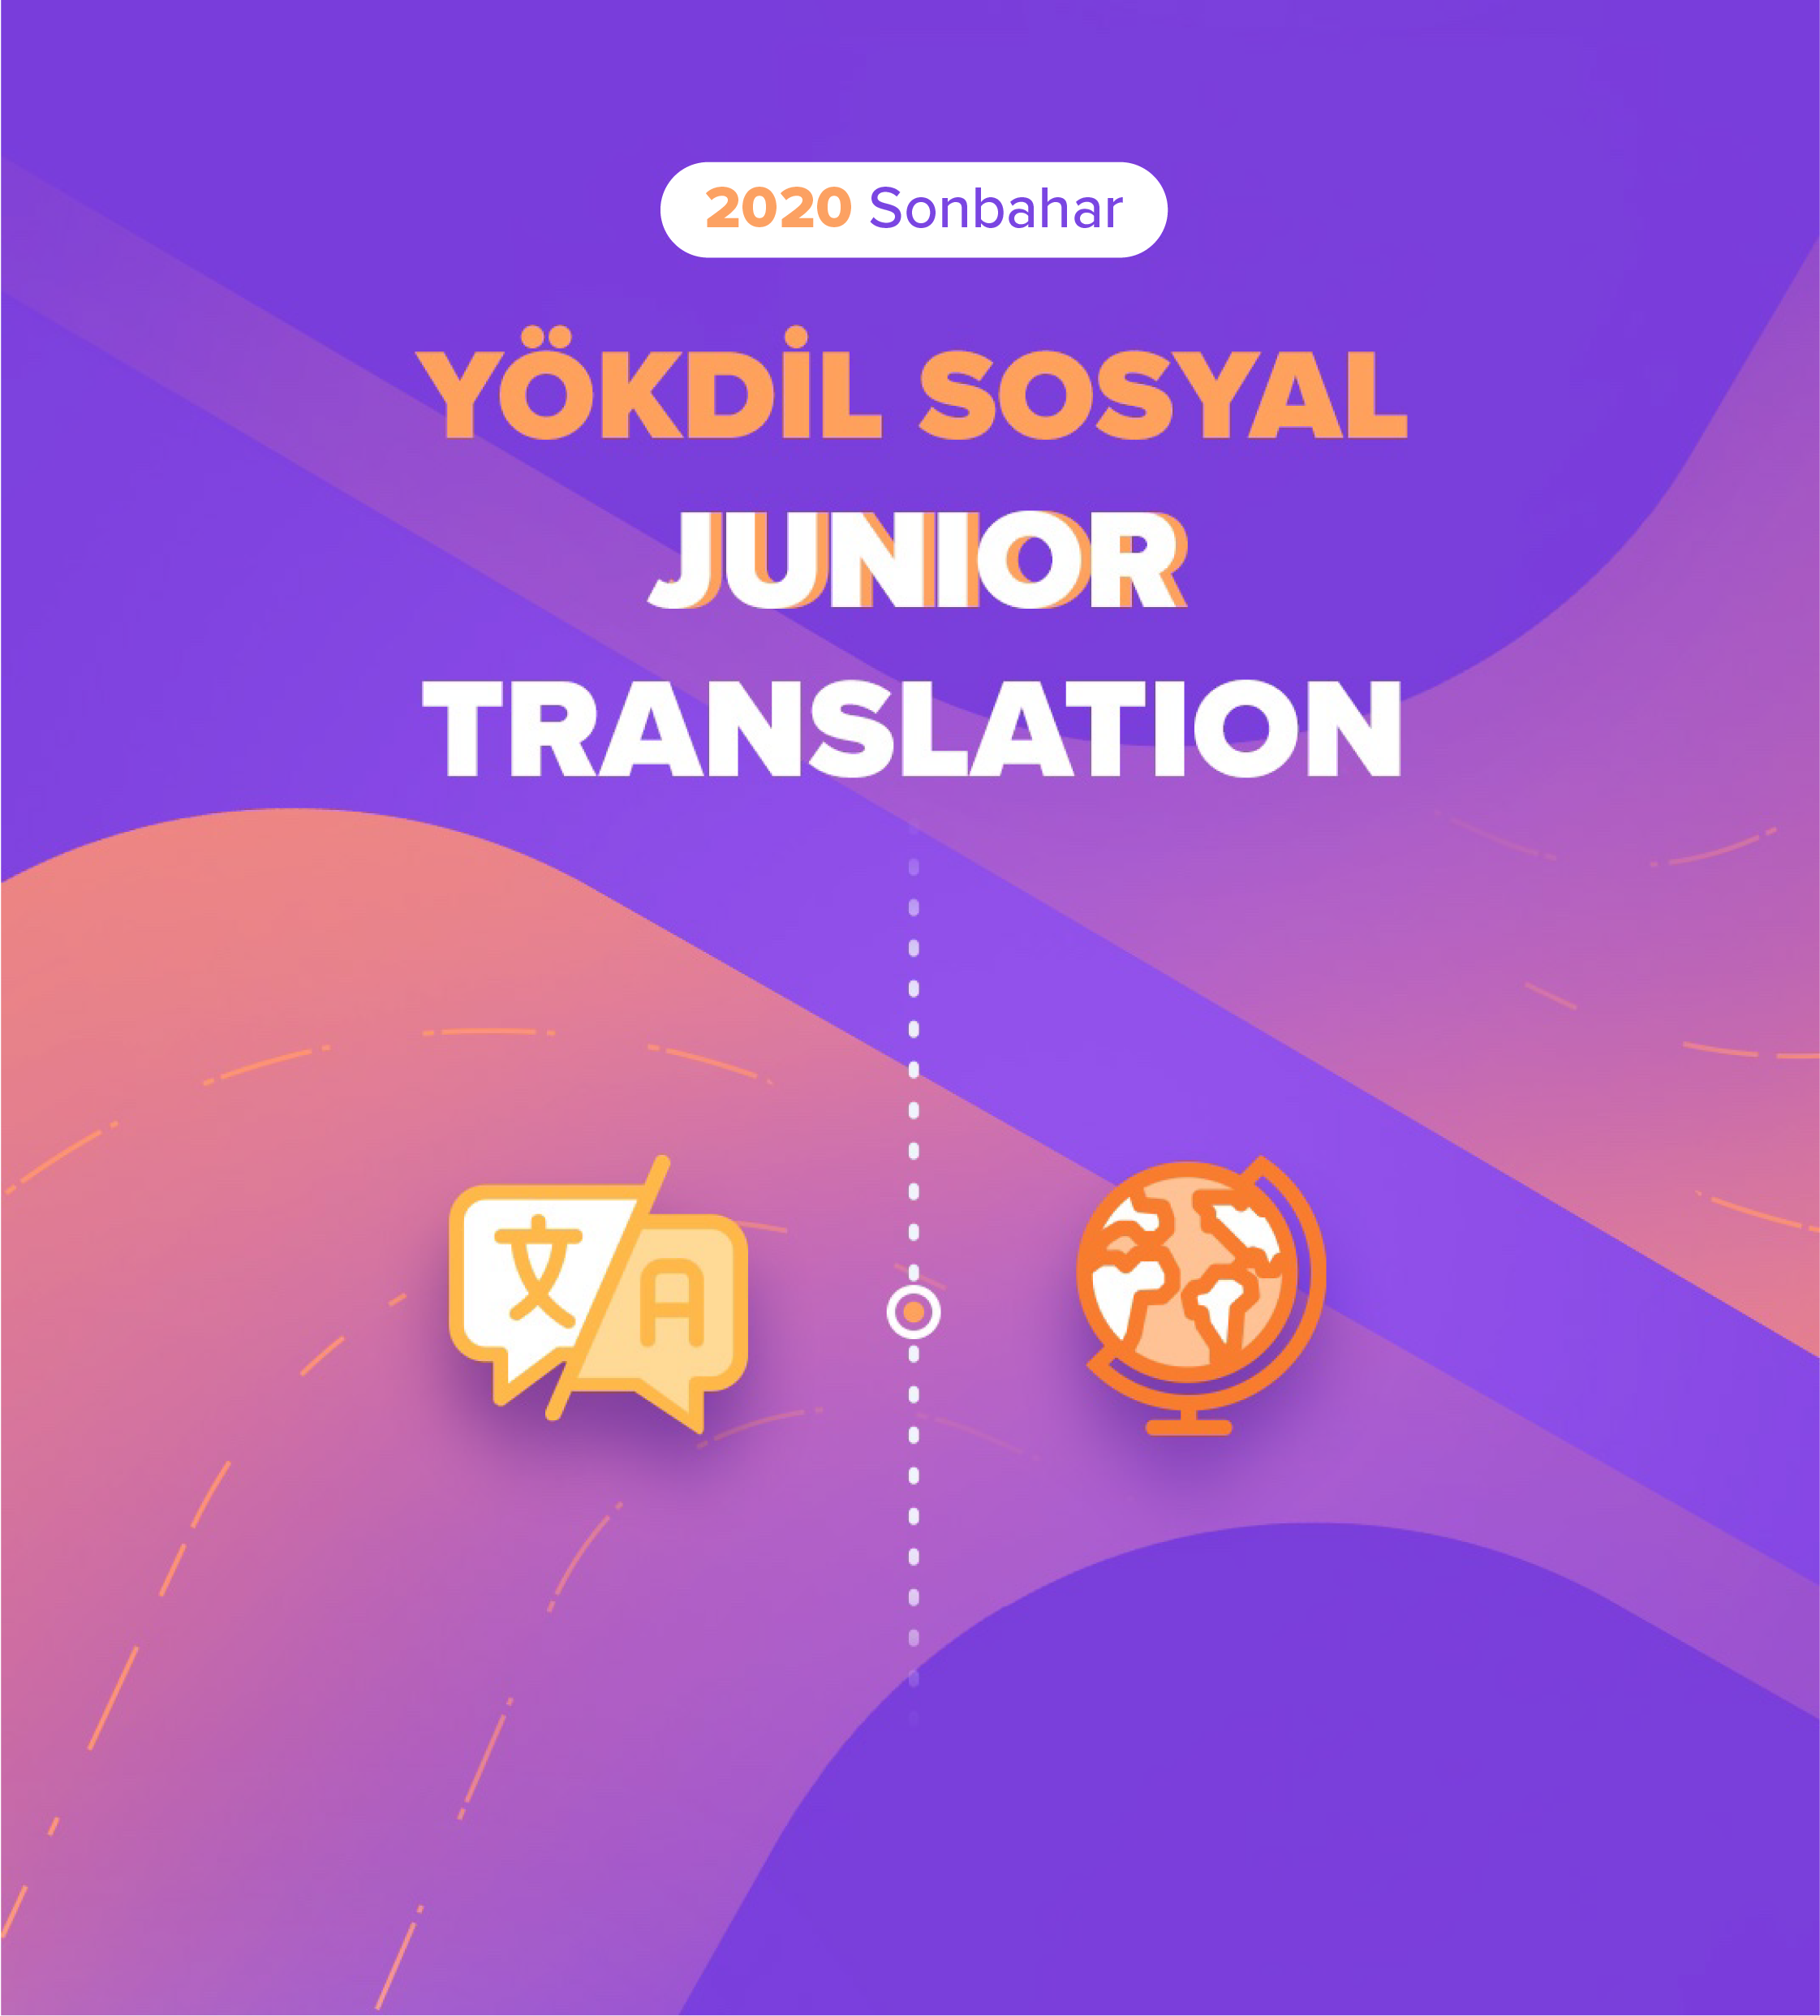 YÖKDİL Sosyal Junior Translation